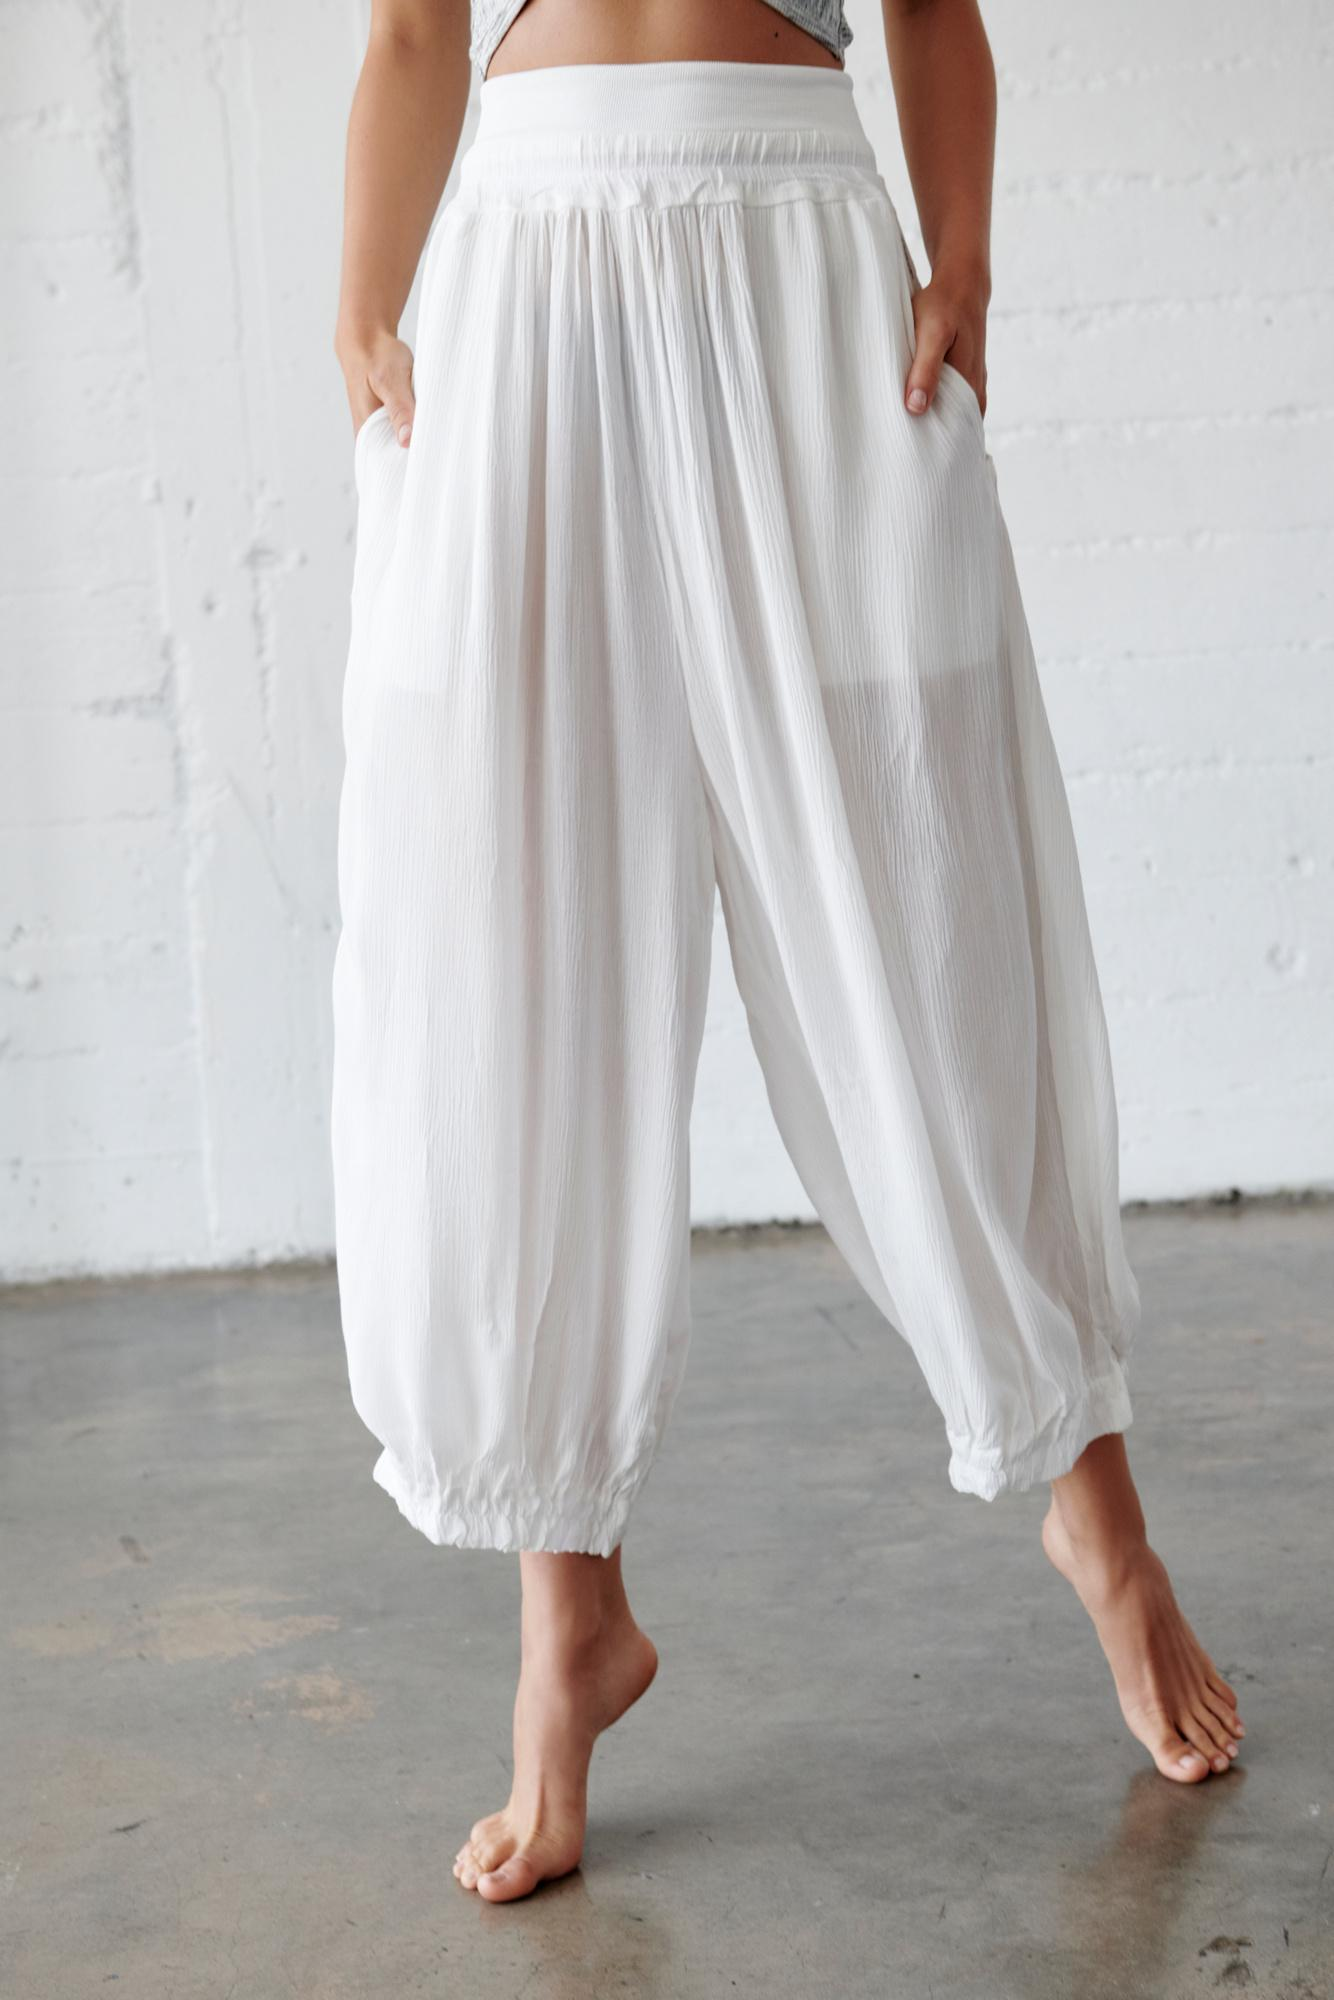 Lyst - Free People Emery Pant By Fp Movement in White dff1744a1